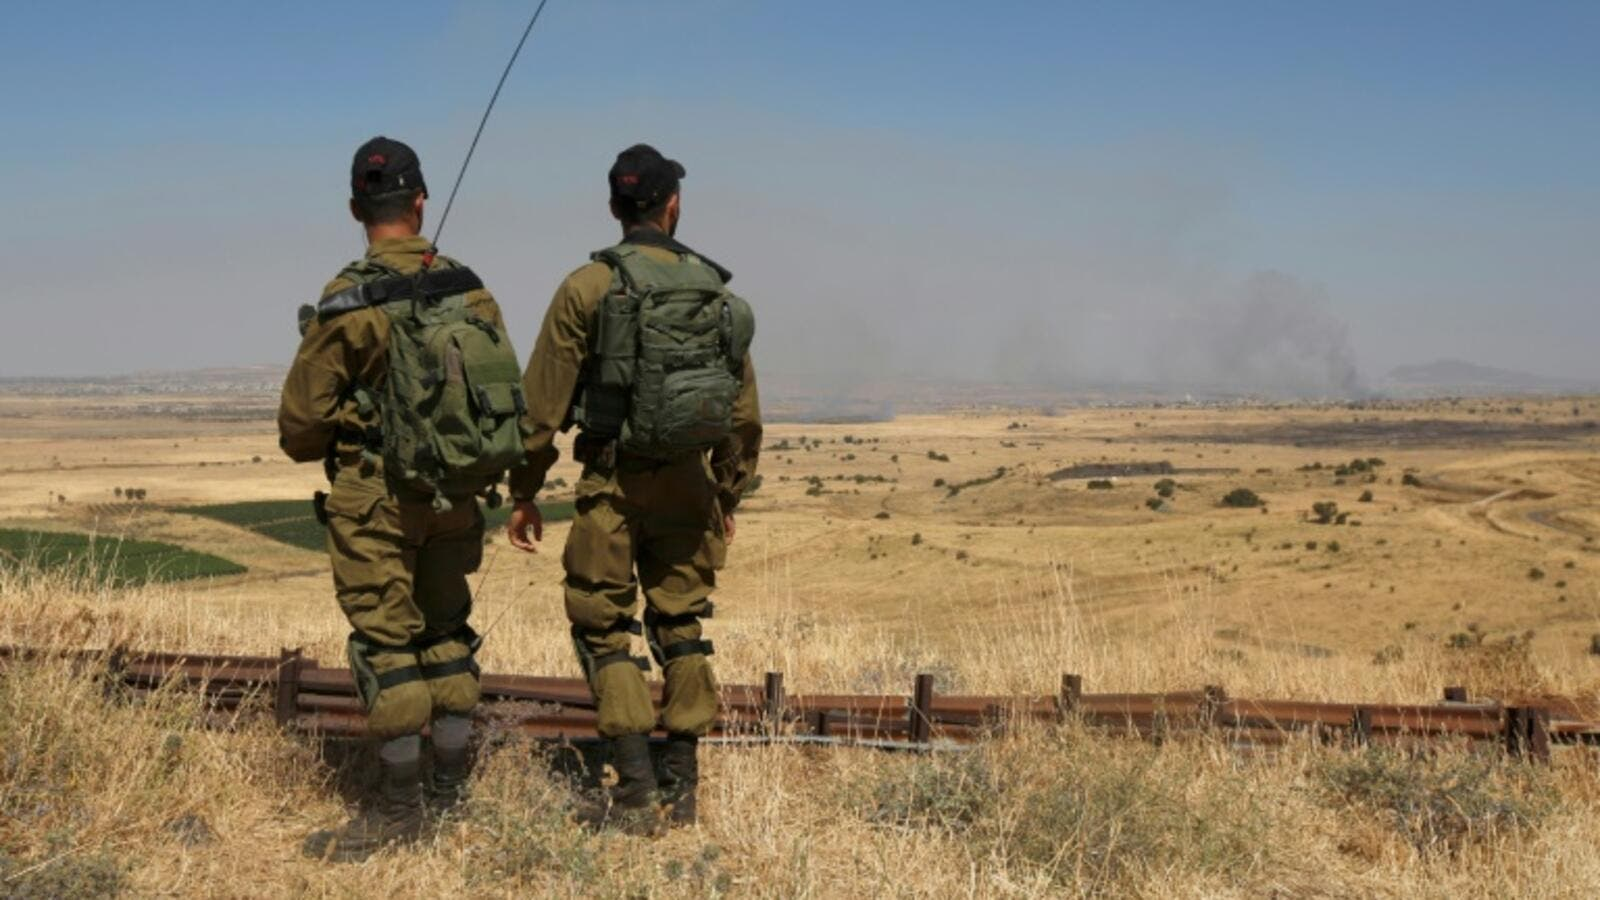 Israeli soldiers patrol near the border with Syria after projectiles fired from the war-torn country hit Israel's Golan Heights on June 24, 2017. (AFP/Jalaa Marey)